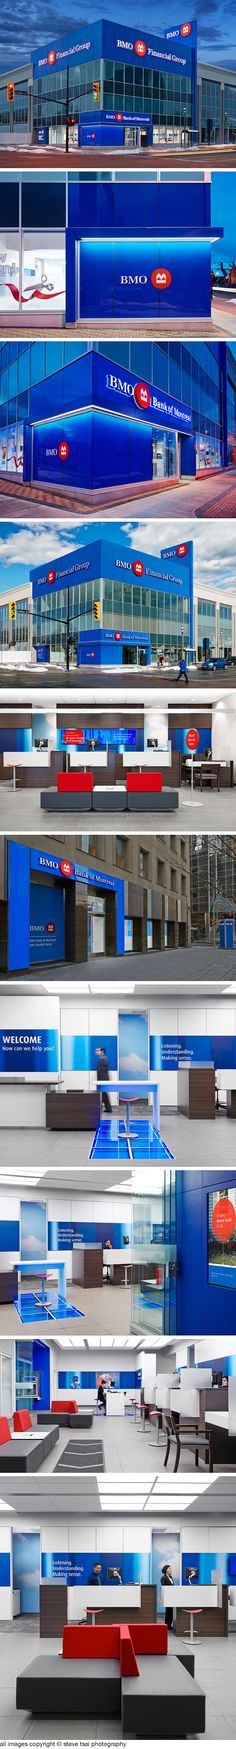 BMO neighbourhood branches photography